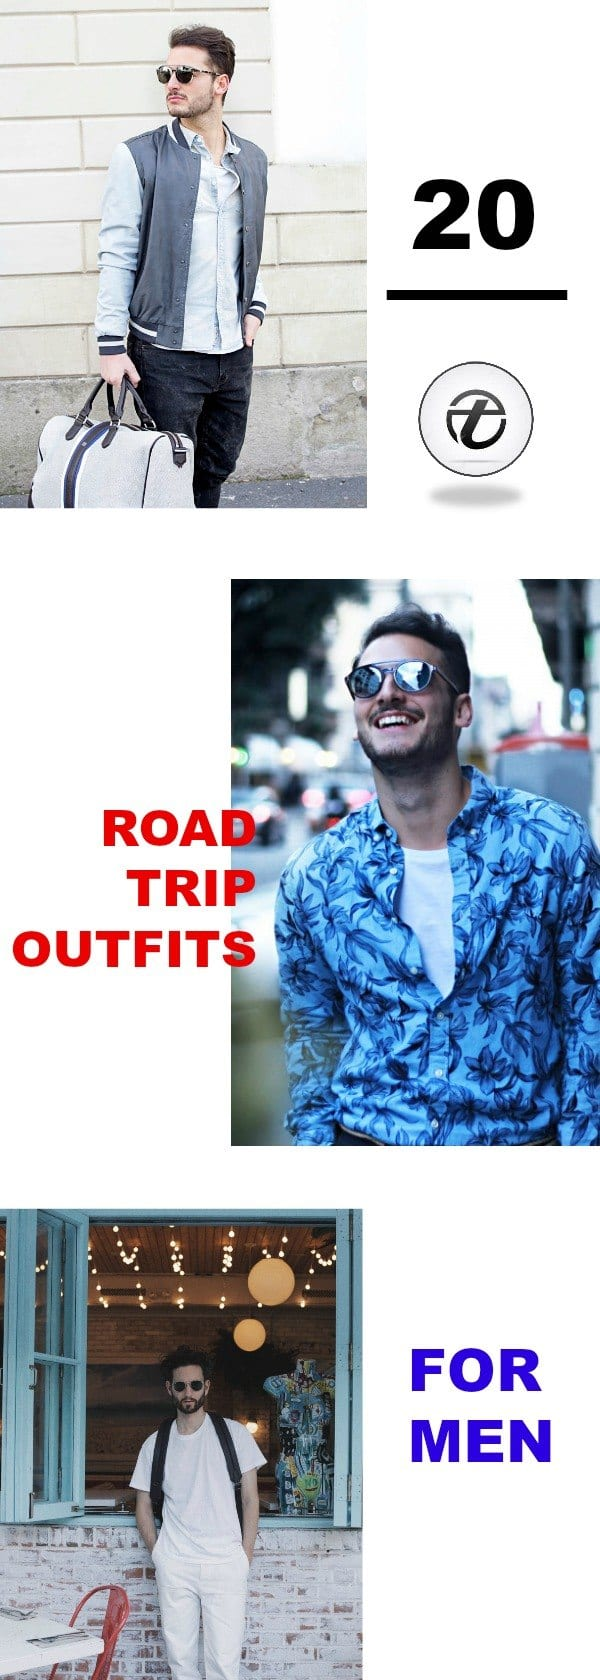 roadtrips1 Men Road Trip Outfits- 20 Ideas What to Wear for a Road Trip